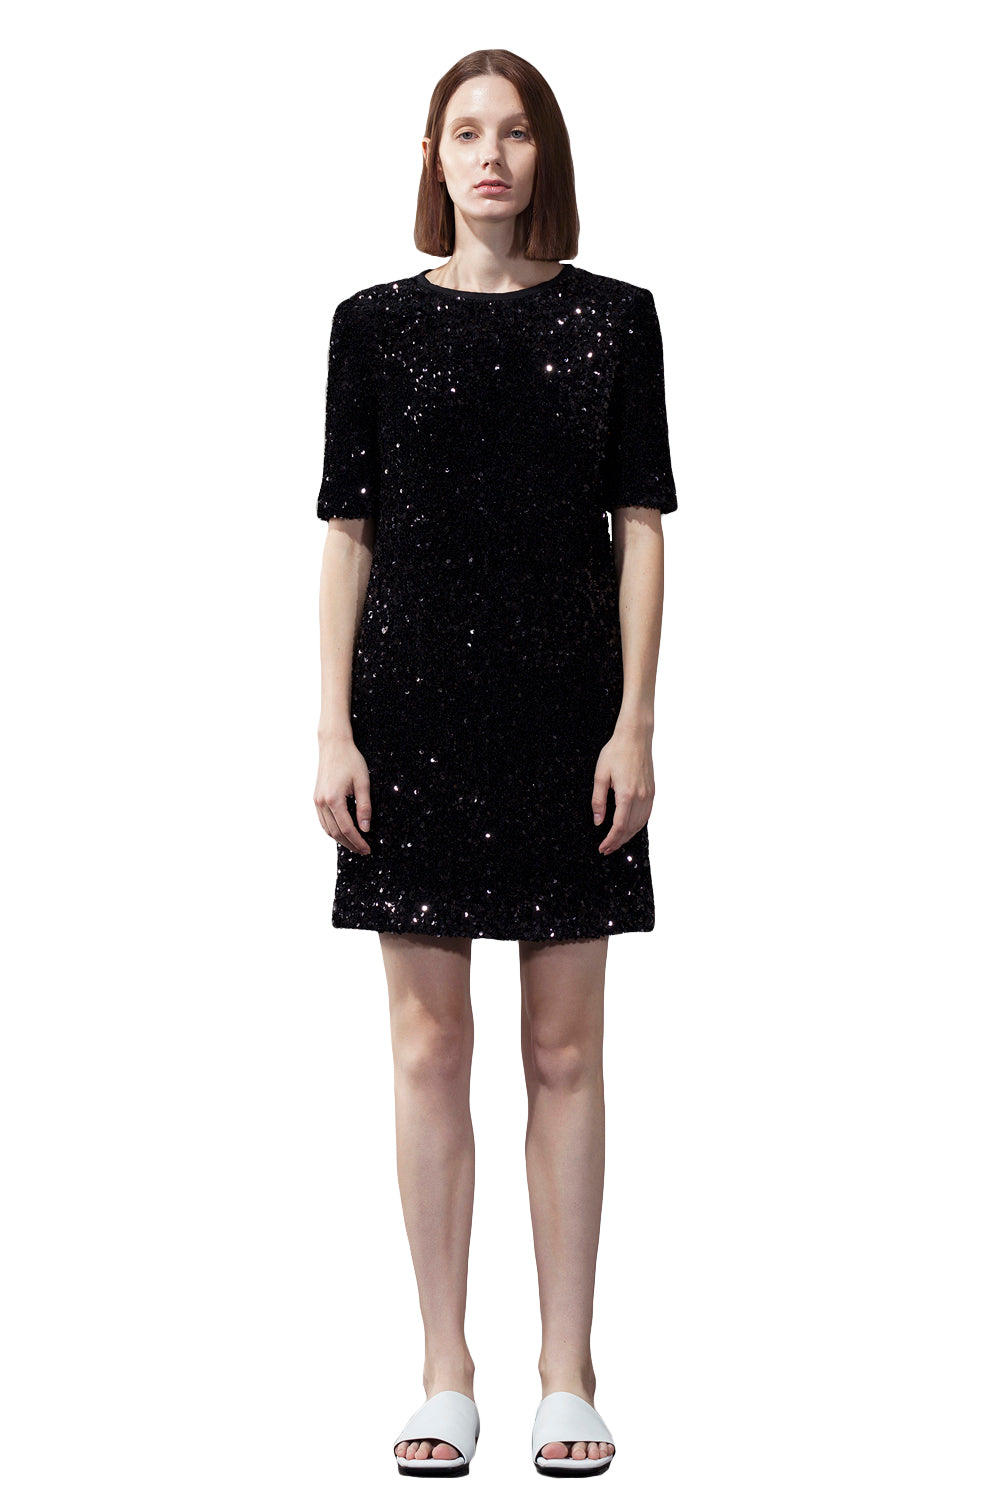 Black Sequin Round Neck Dress